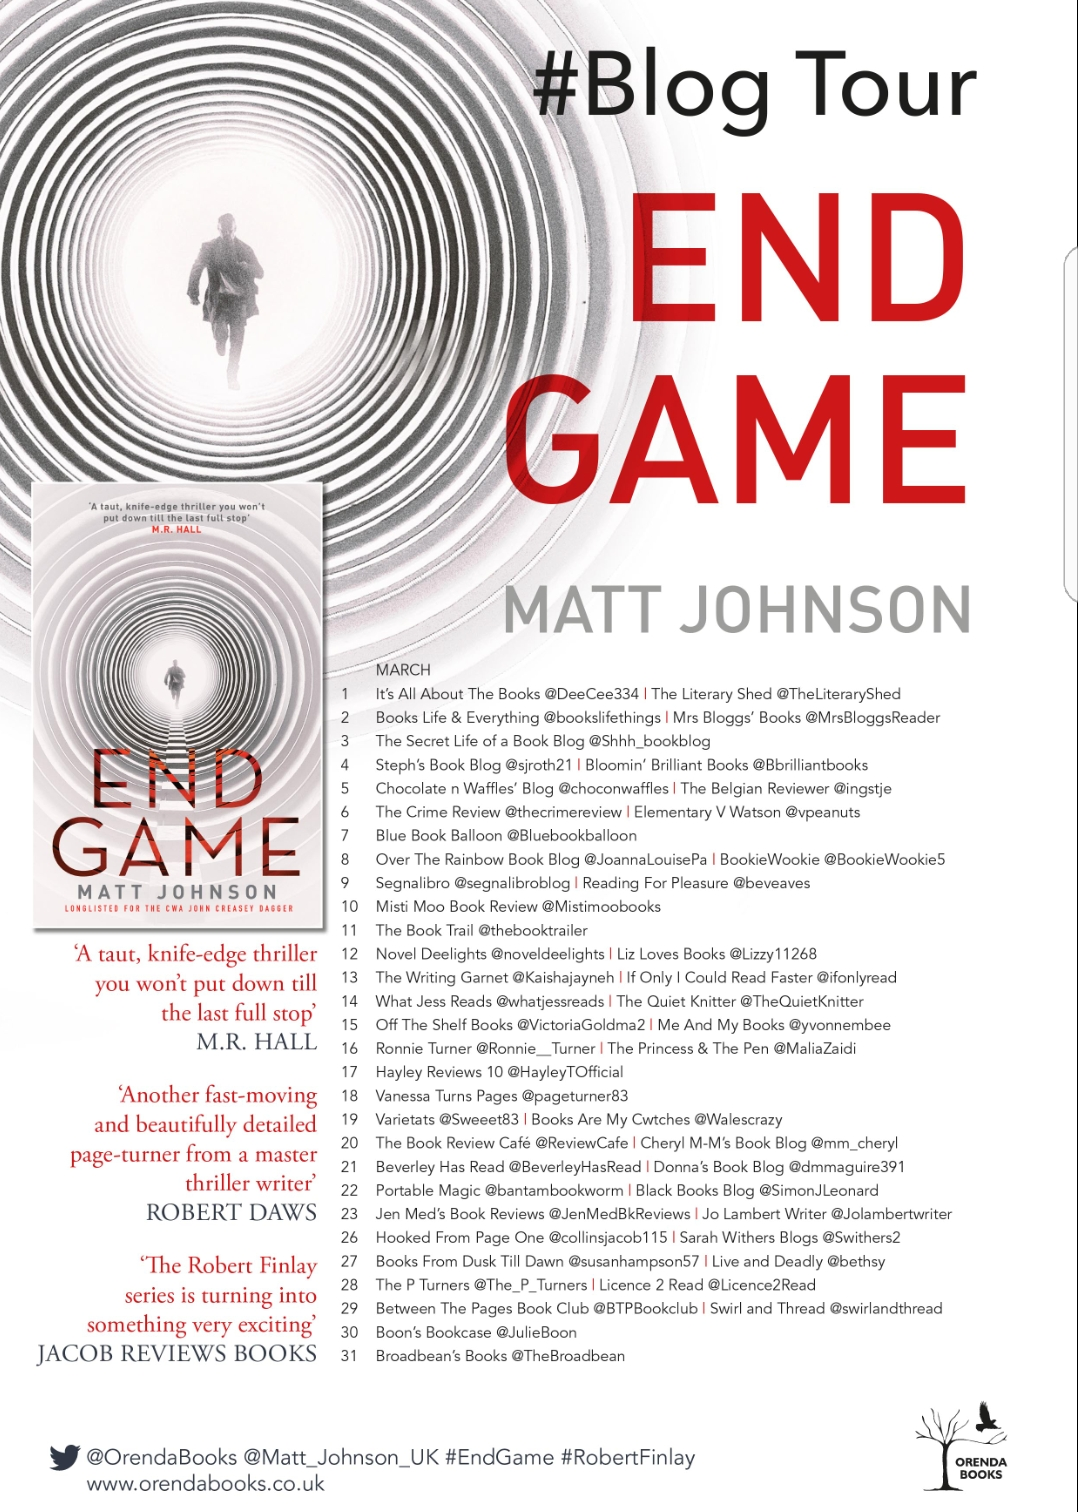 b7c31fe44c End Game (Robert Finlay) by Matt Johnson  Matt Johnson UK  OrendaBooks   MattJohnson  EndGame  BlogTour – BOOKS FROM DUSK TILL DAWN